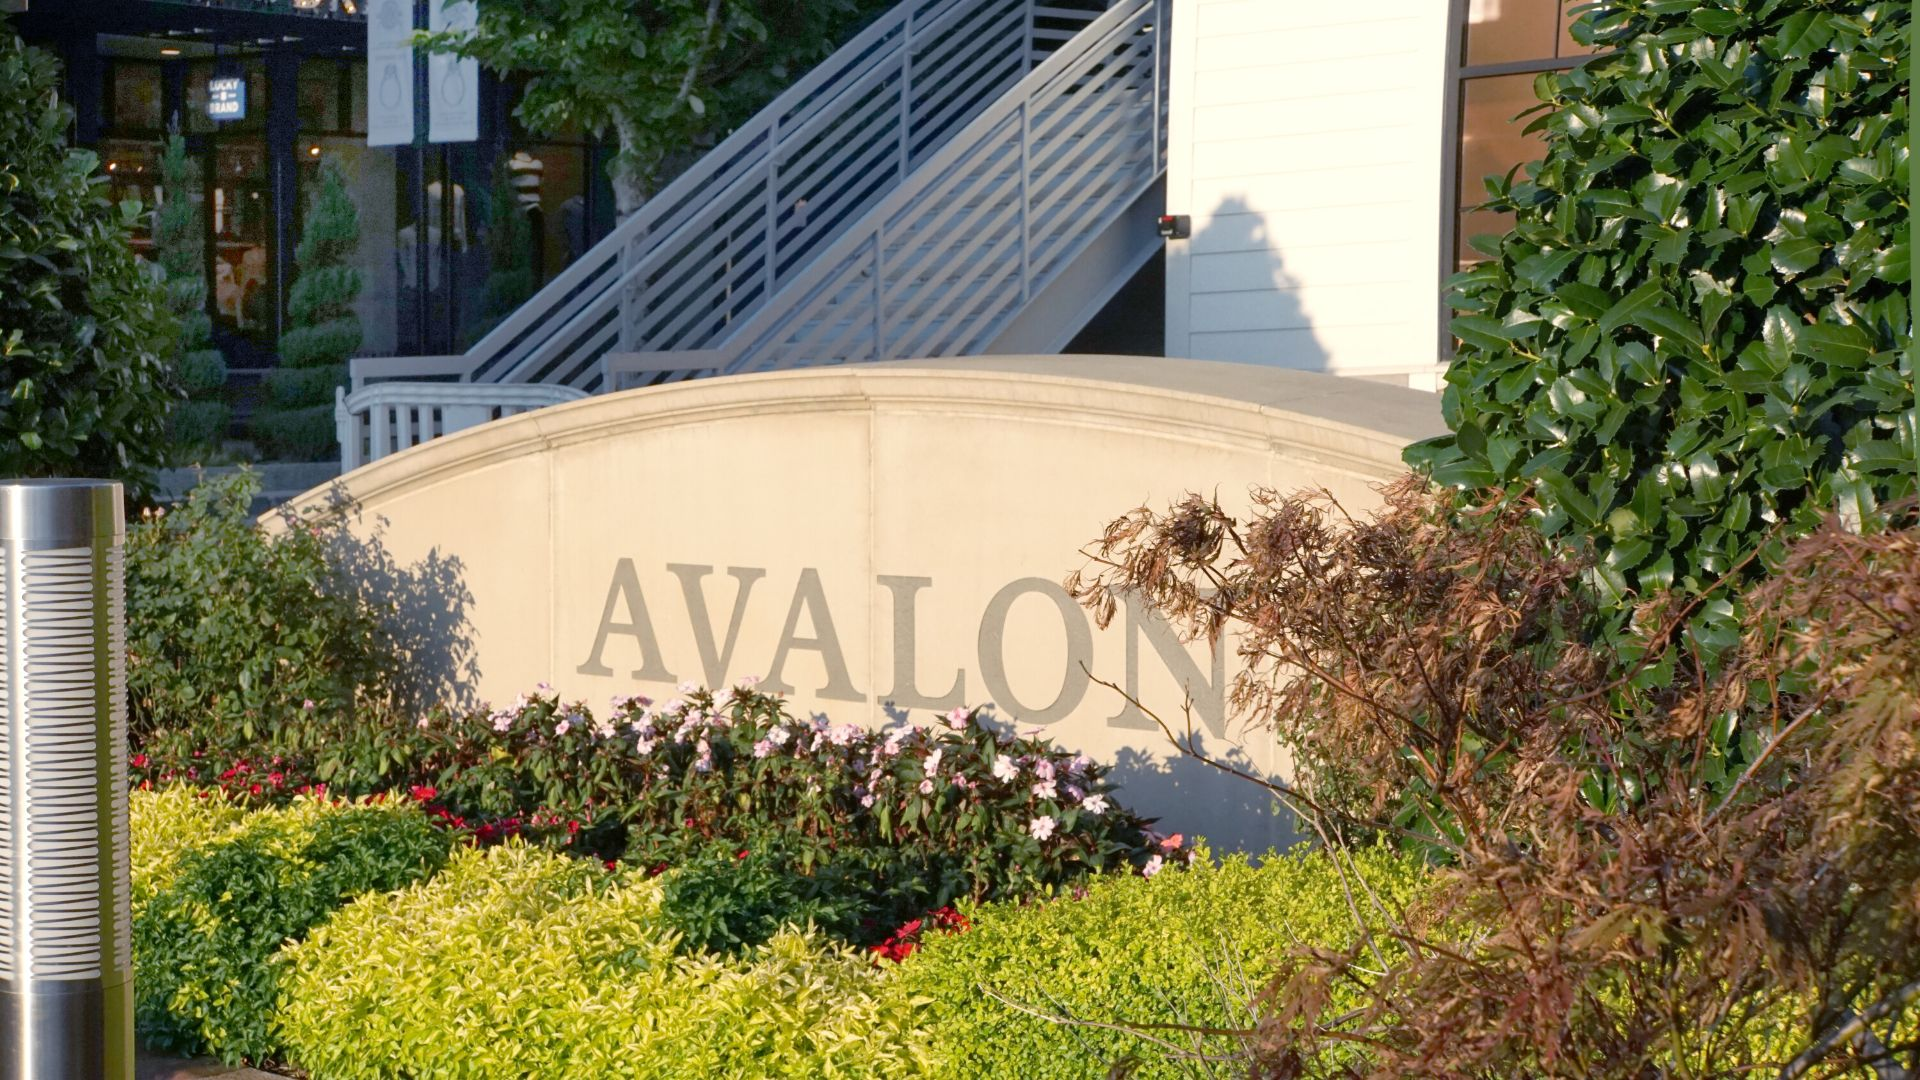 The Avalon